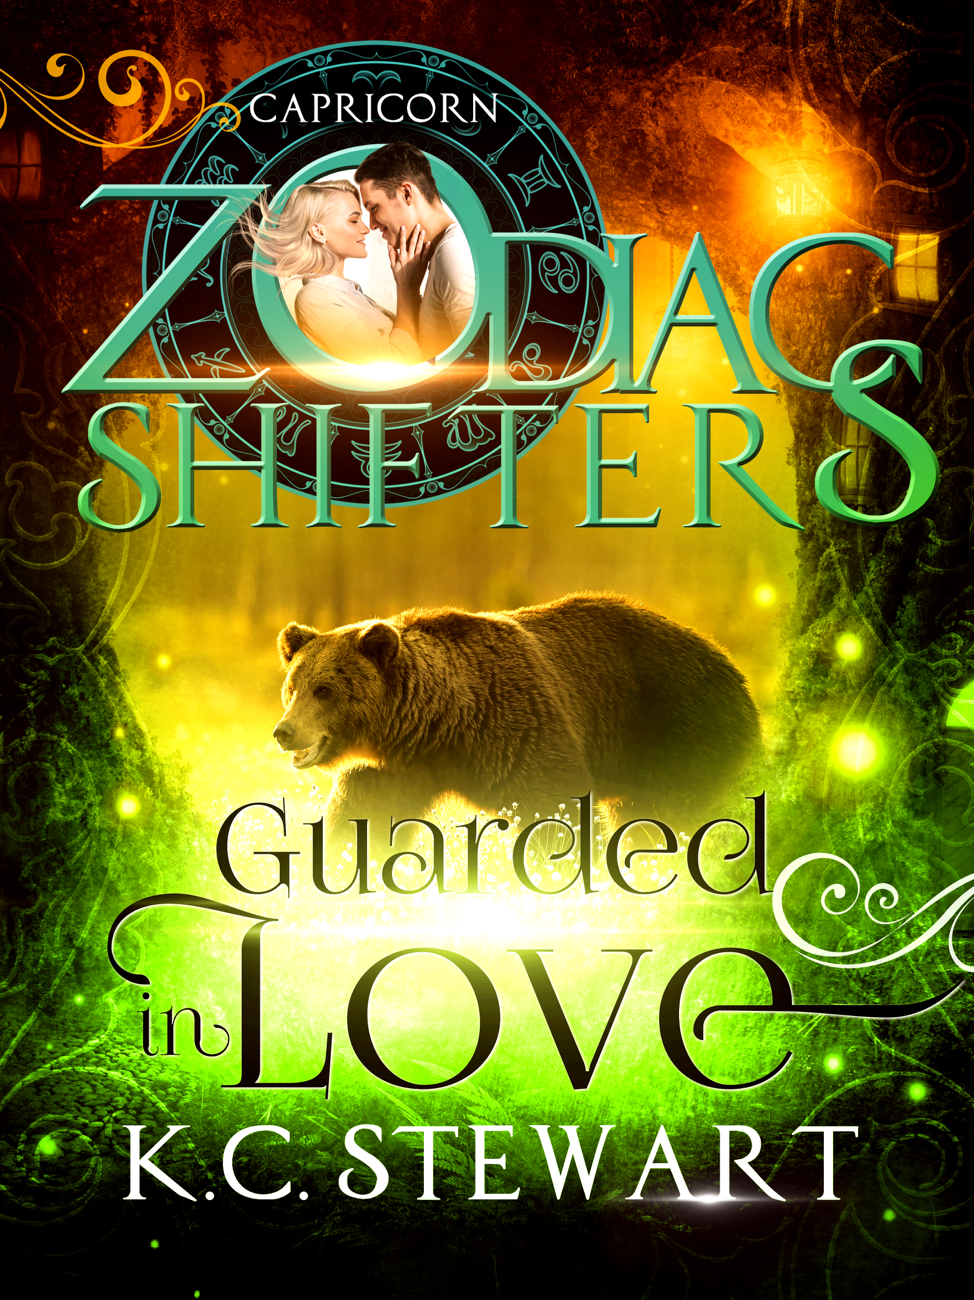 Guarded in Love Cover by K.C. Stewart